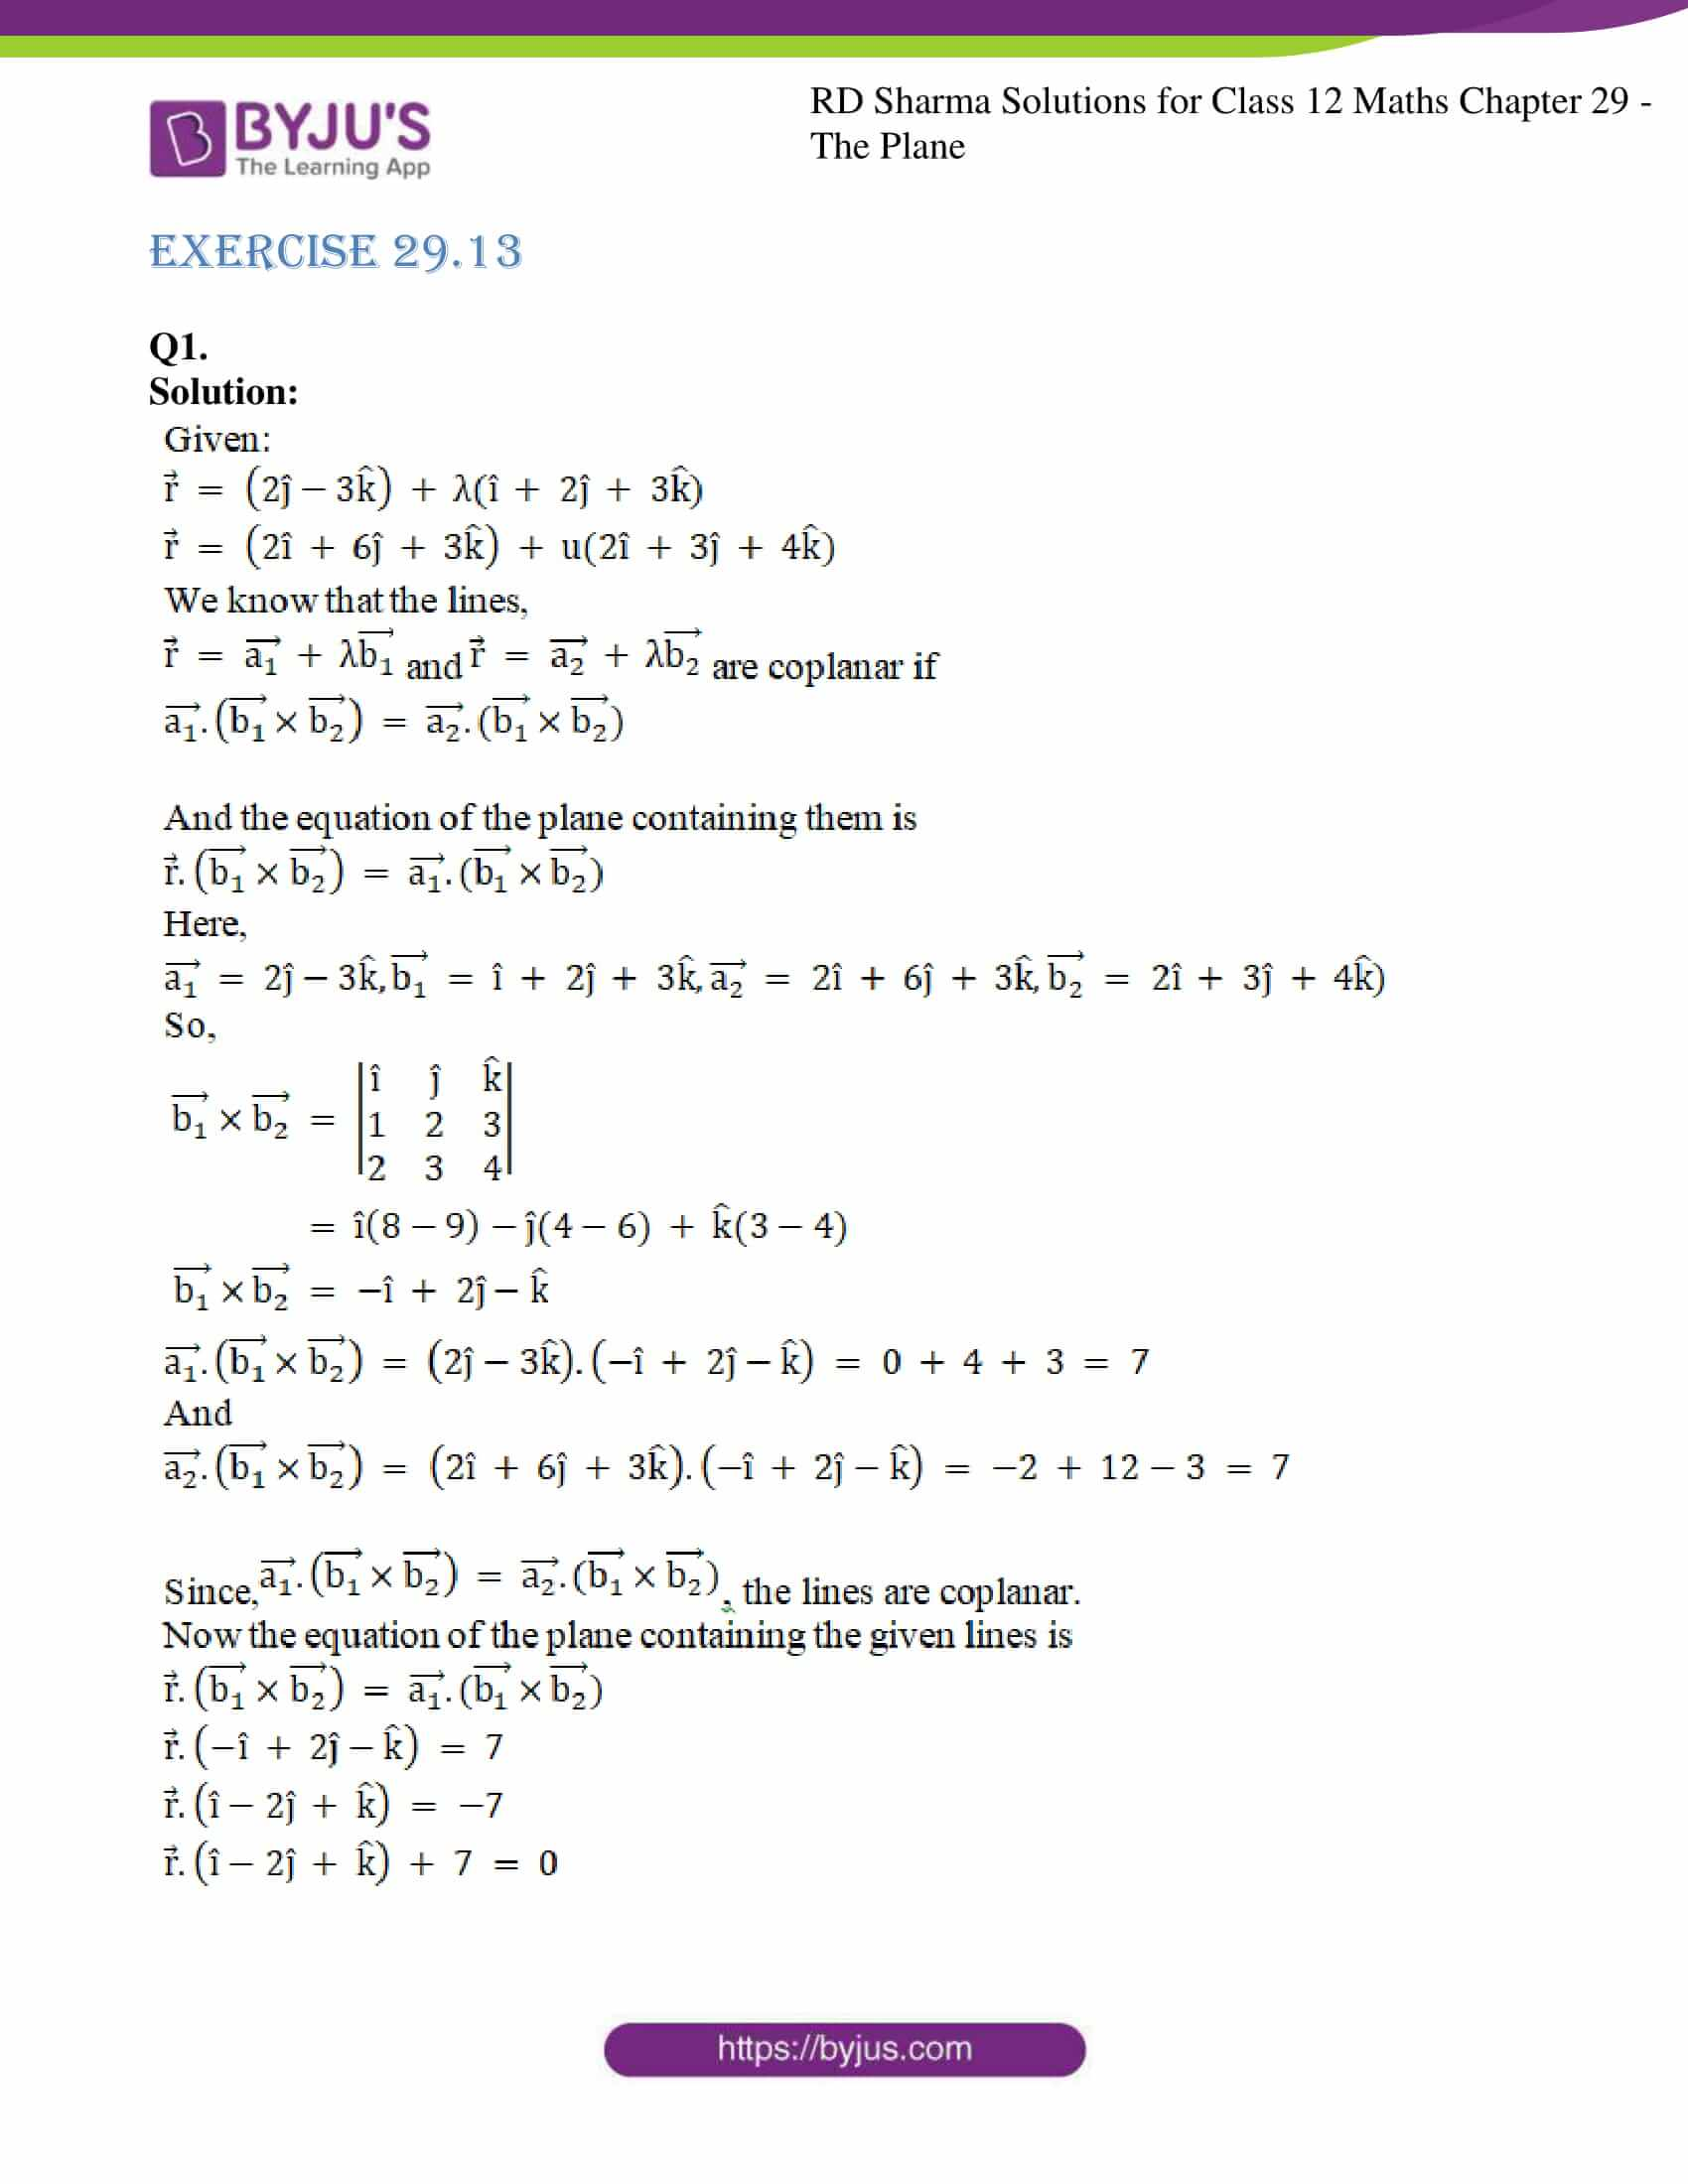 rd sharma solutions for class 12 maths chapter 29 ex 13 1